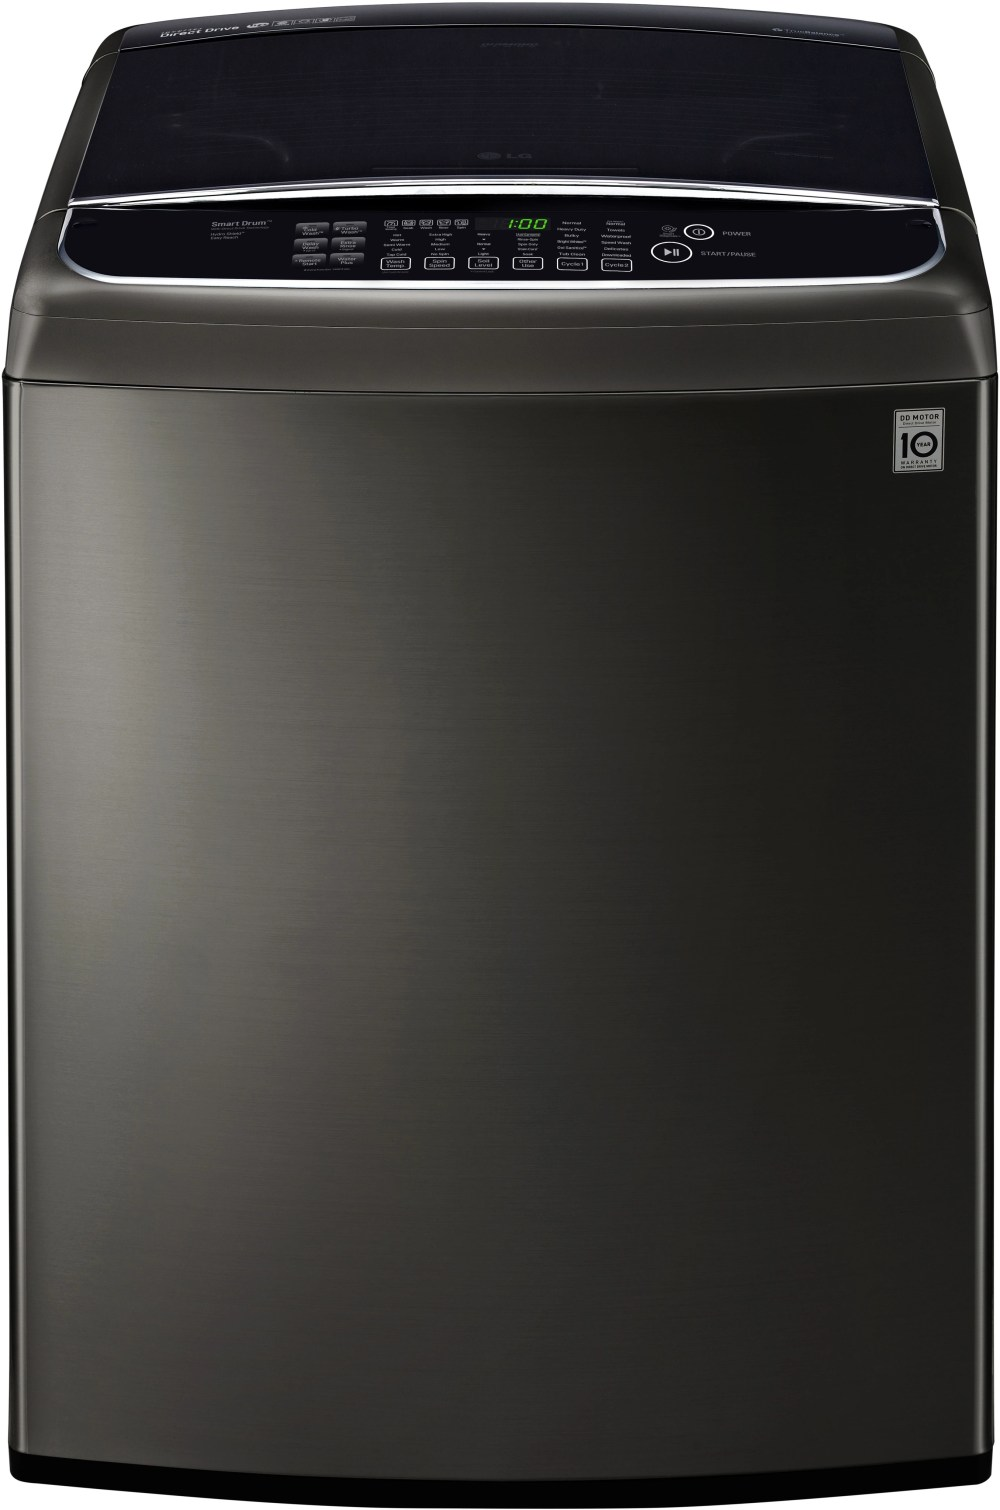 medium resolution of ft black stainless steel top load washer wt1901ck lg